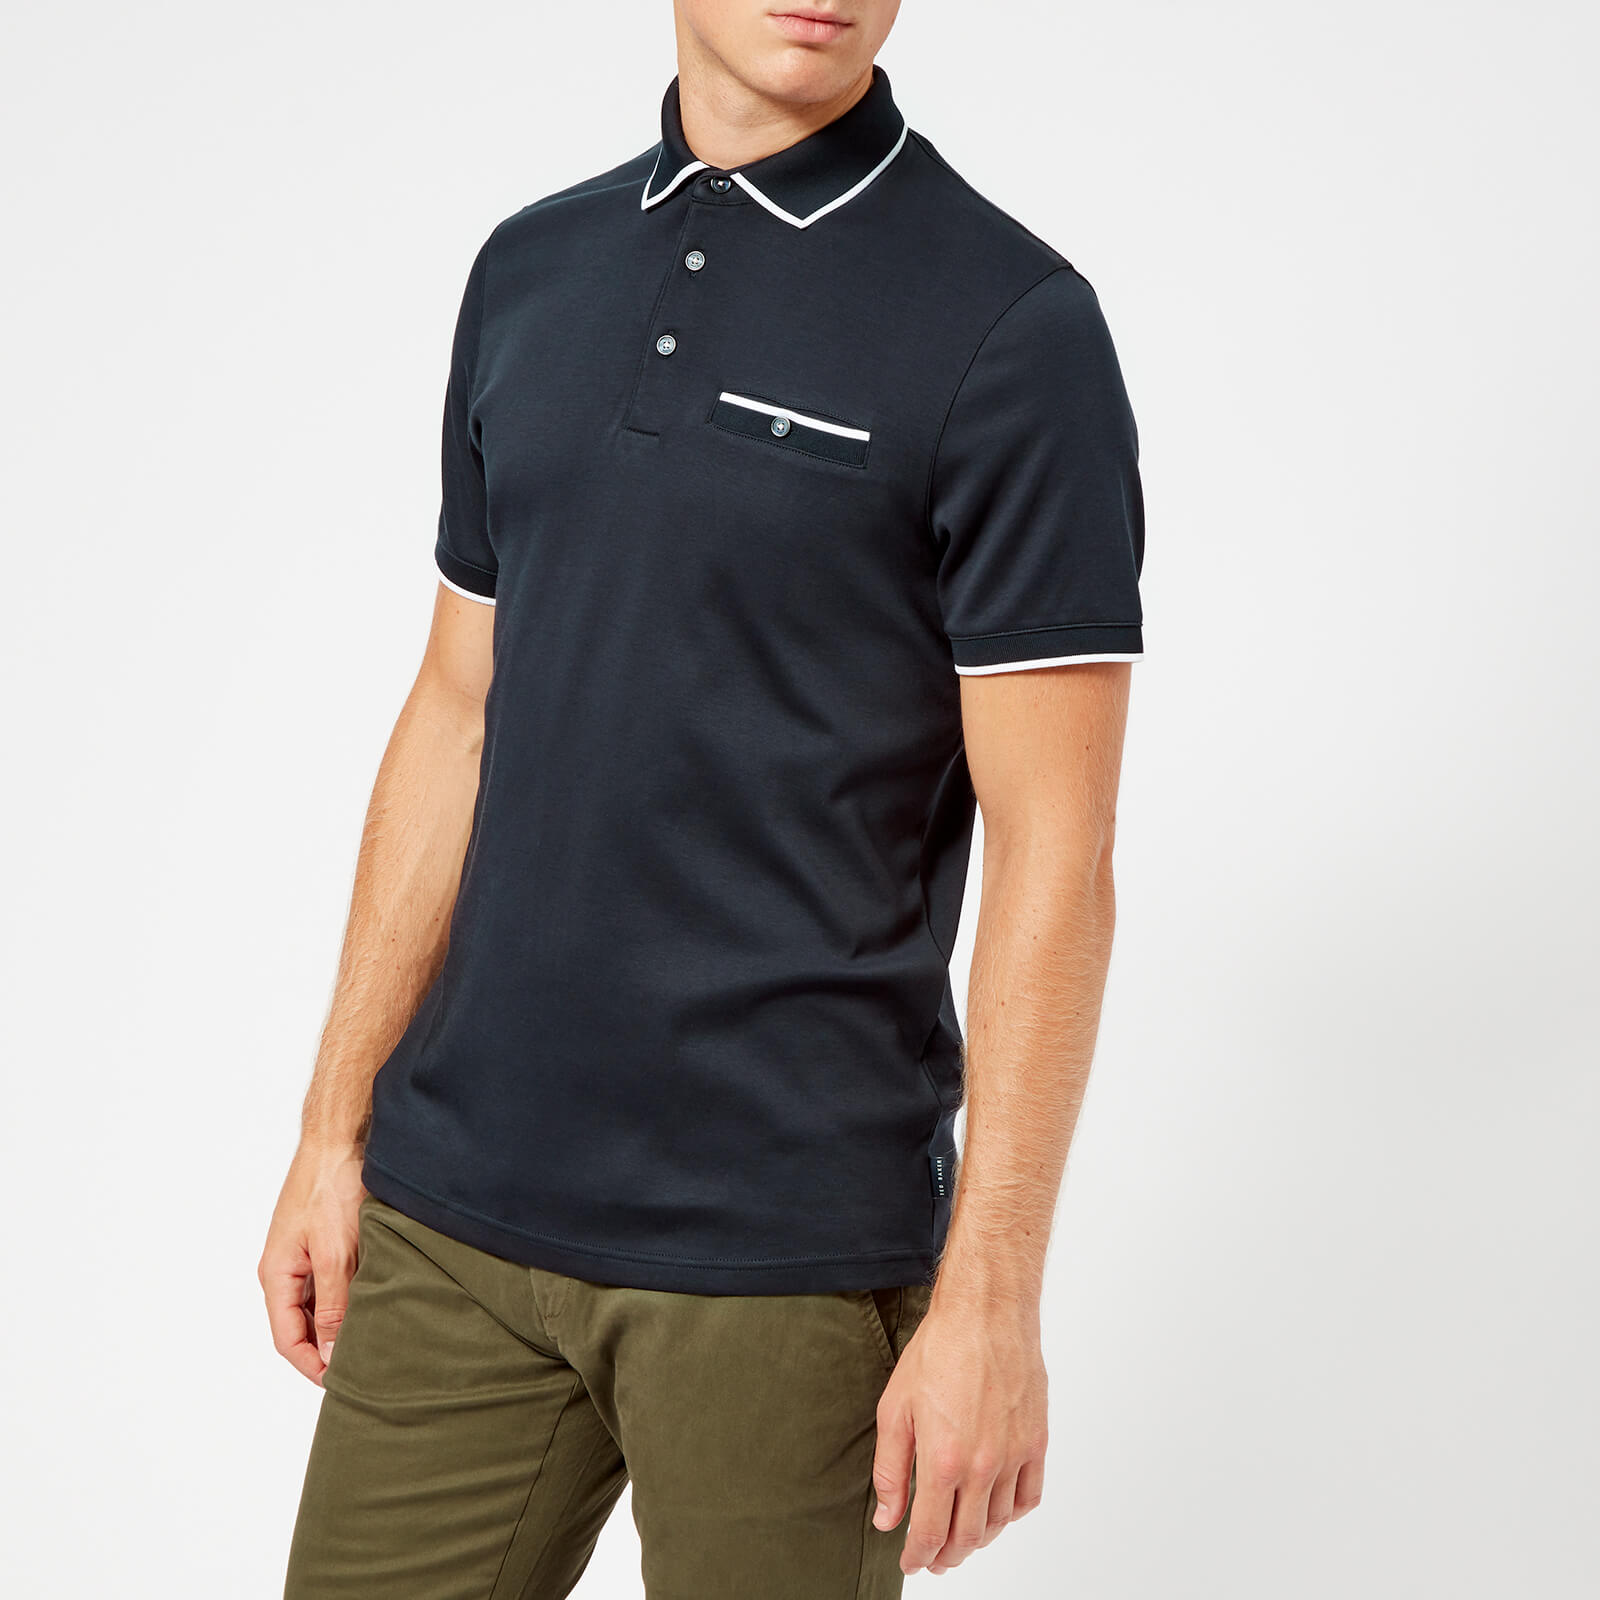 ada37220d Ted Baker Men s Jelly Polo Shirt - Navy Clothing